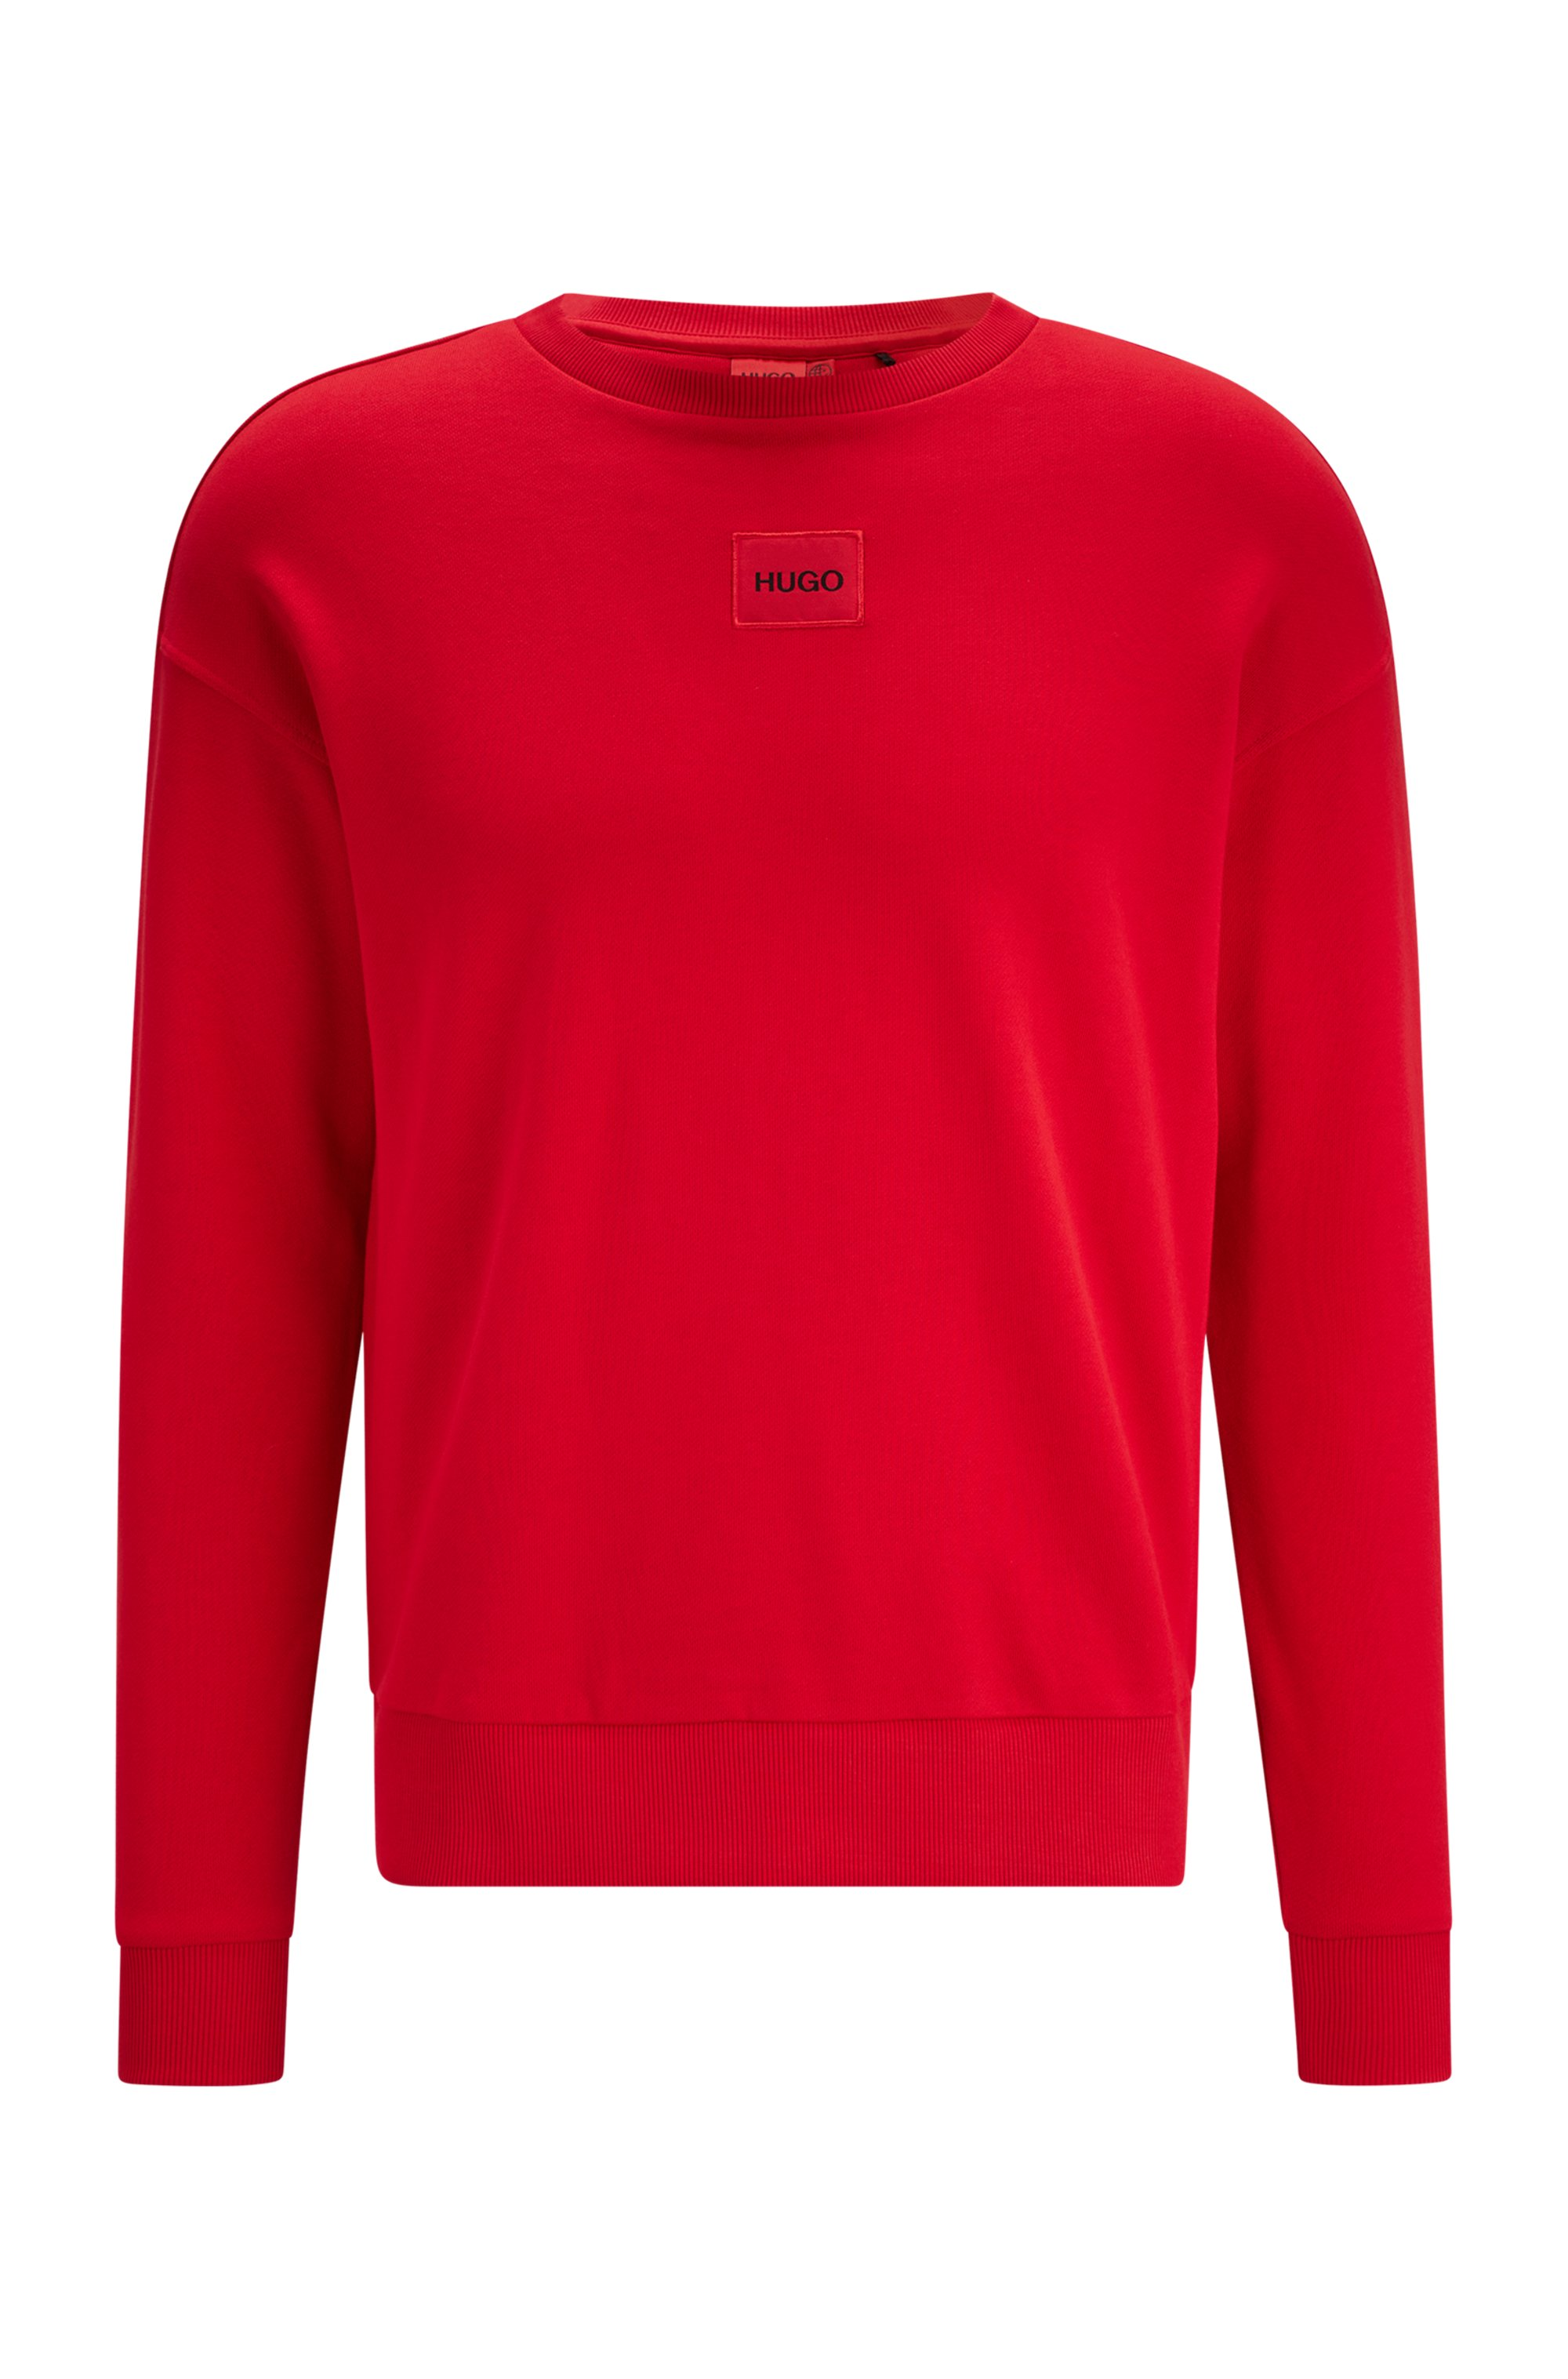 Regular-fit cotton sweatshirt with red logo label, light pink